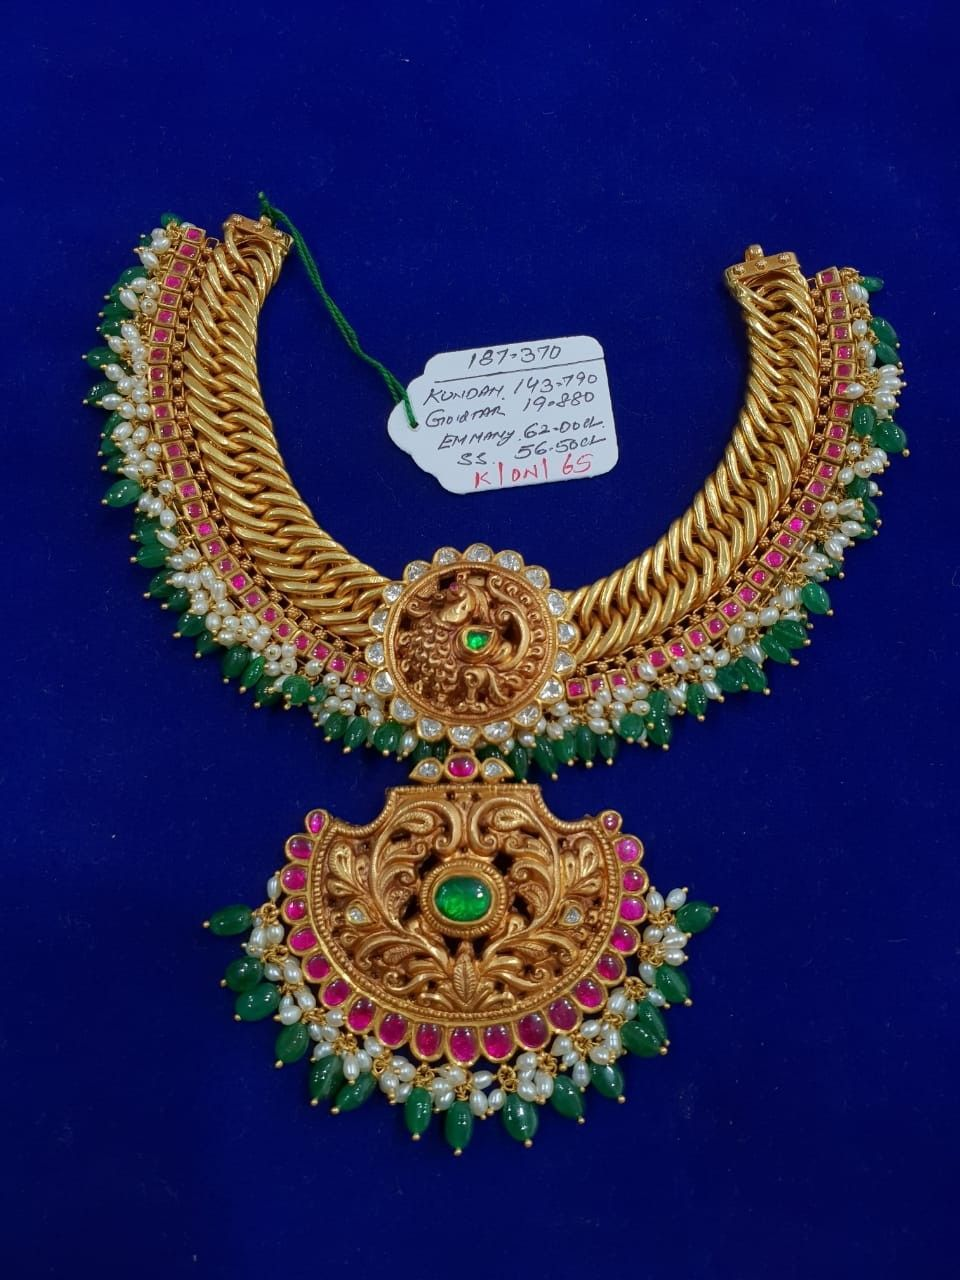 Pin by Raji on Jewellery | Jewelry, Gold jewelry for sale